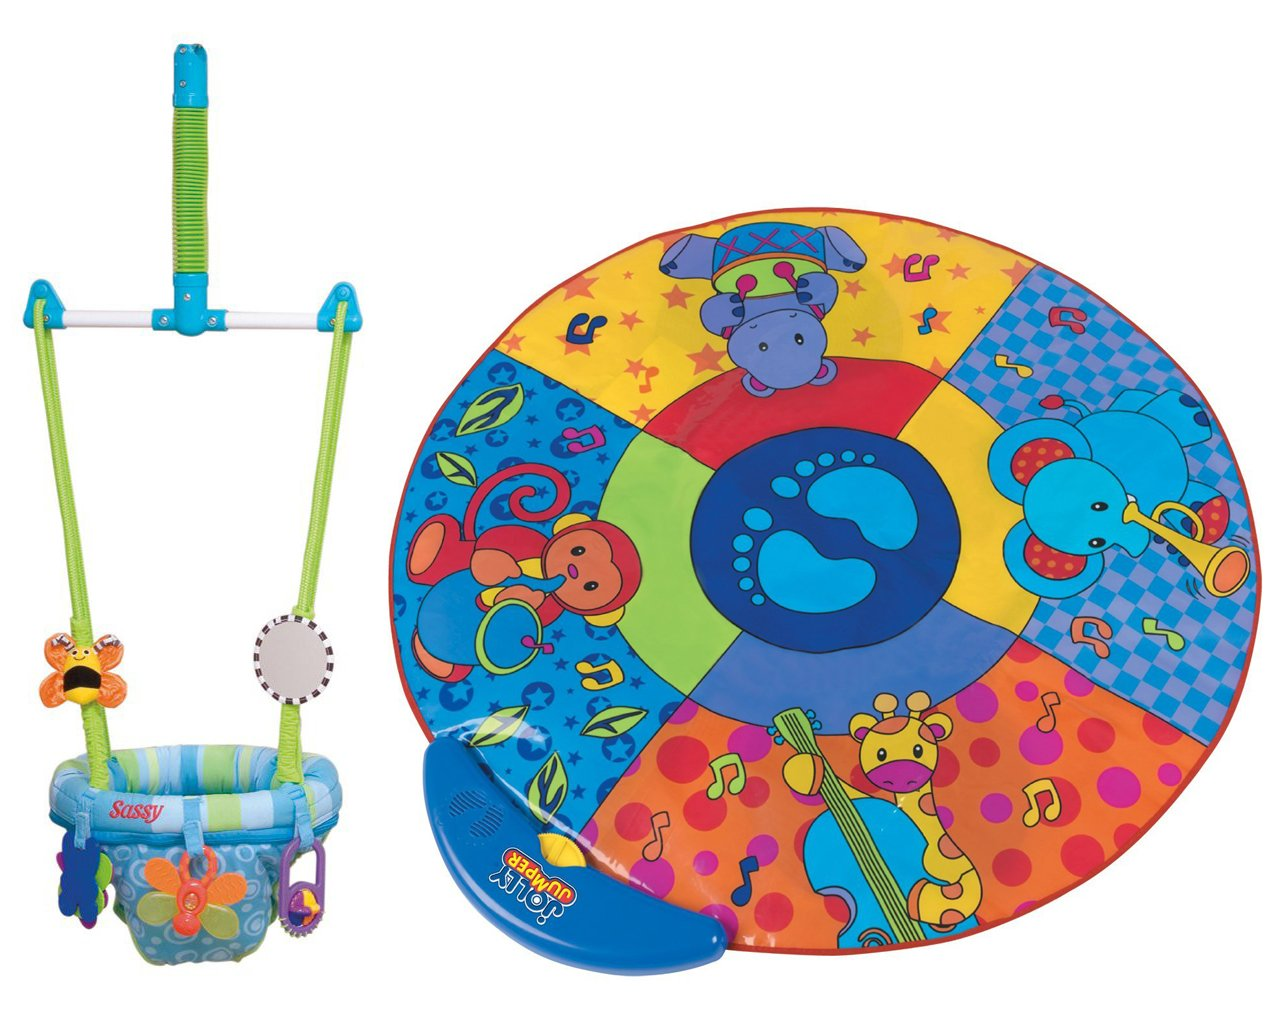 Sassy Seat Doorway Jumper, 5 Toys with Musical Play Mat